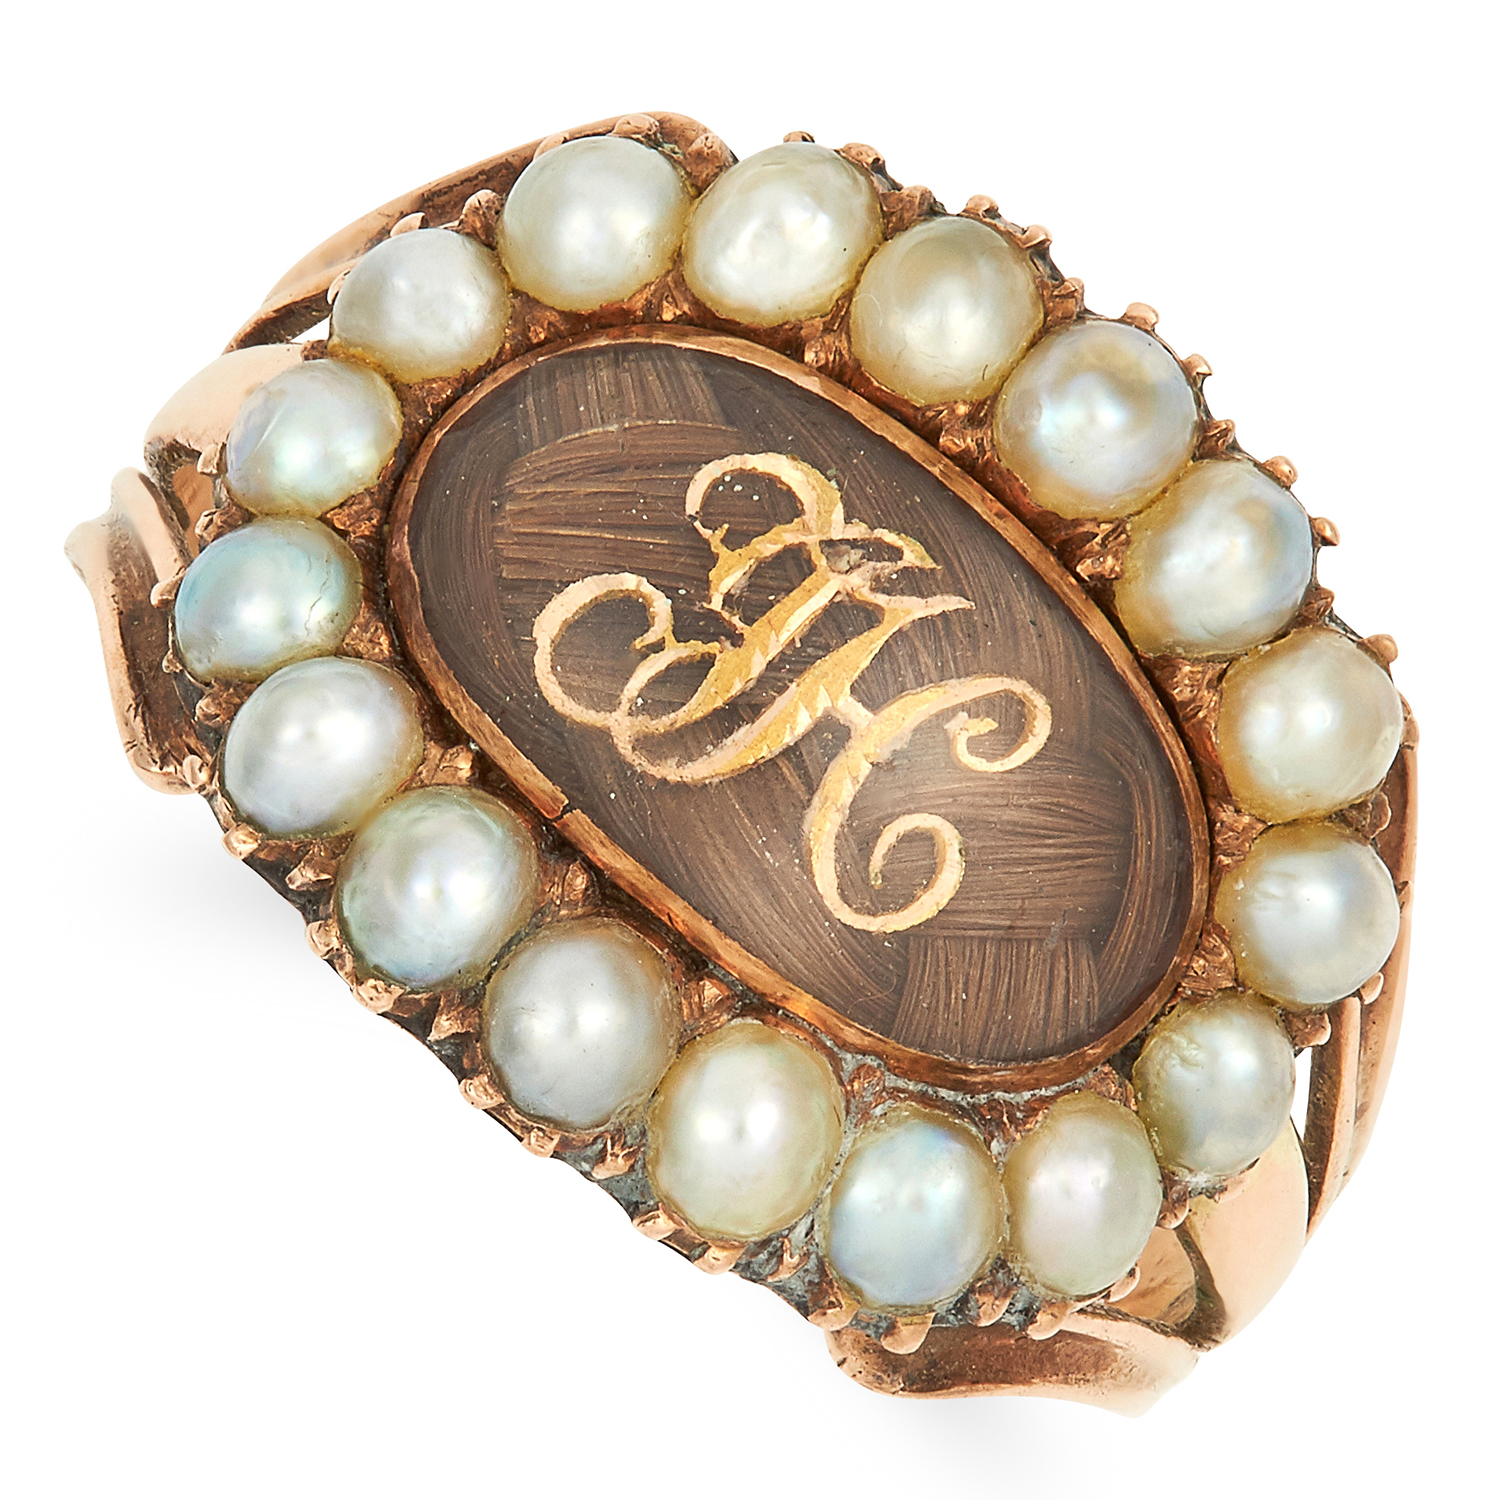 Los 59 - ANTIQUE HAIRWORK AND PEARL MOURNING RING CIRCA 1820 set with pearls and an oval panel of woven